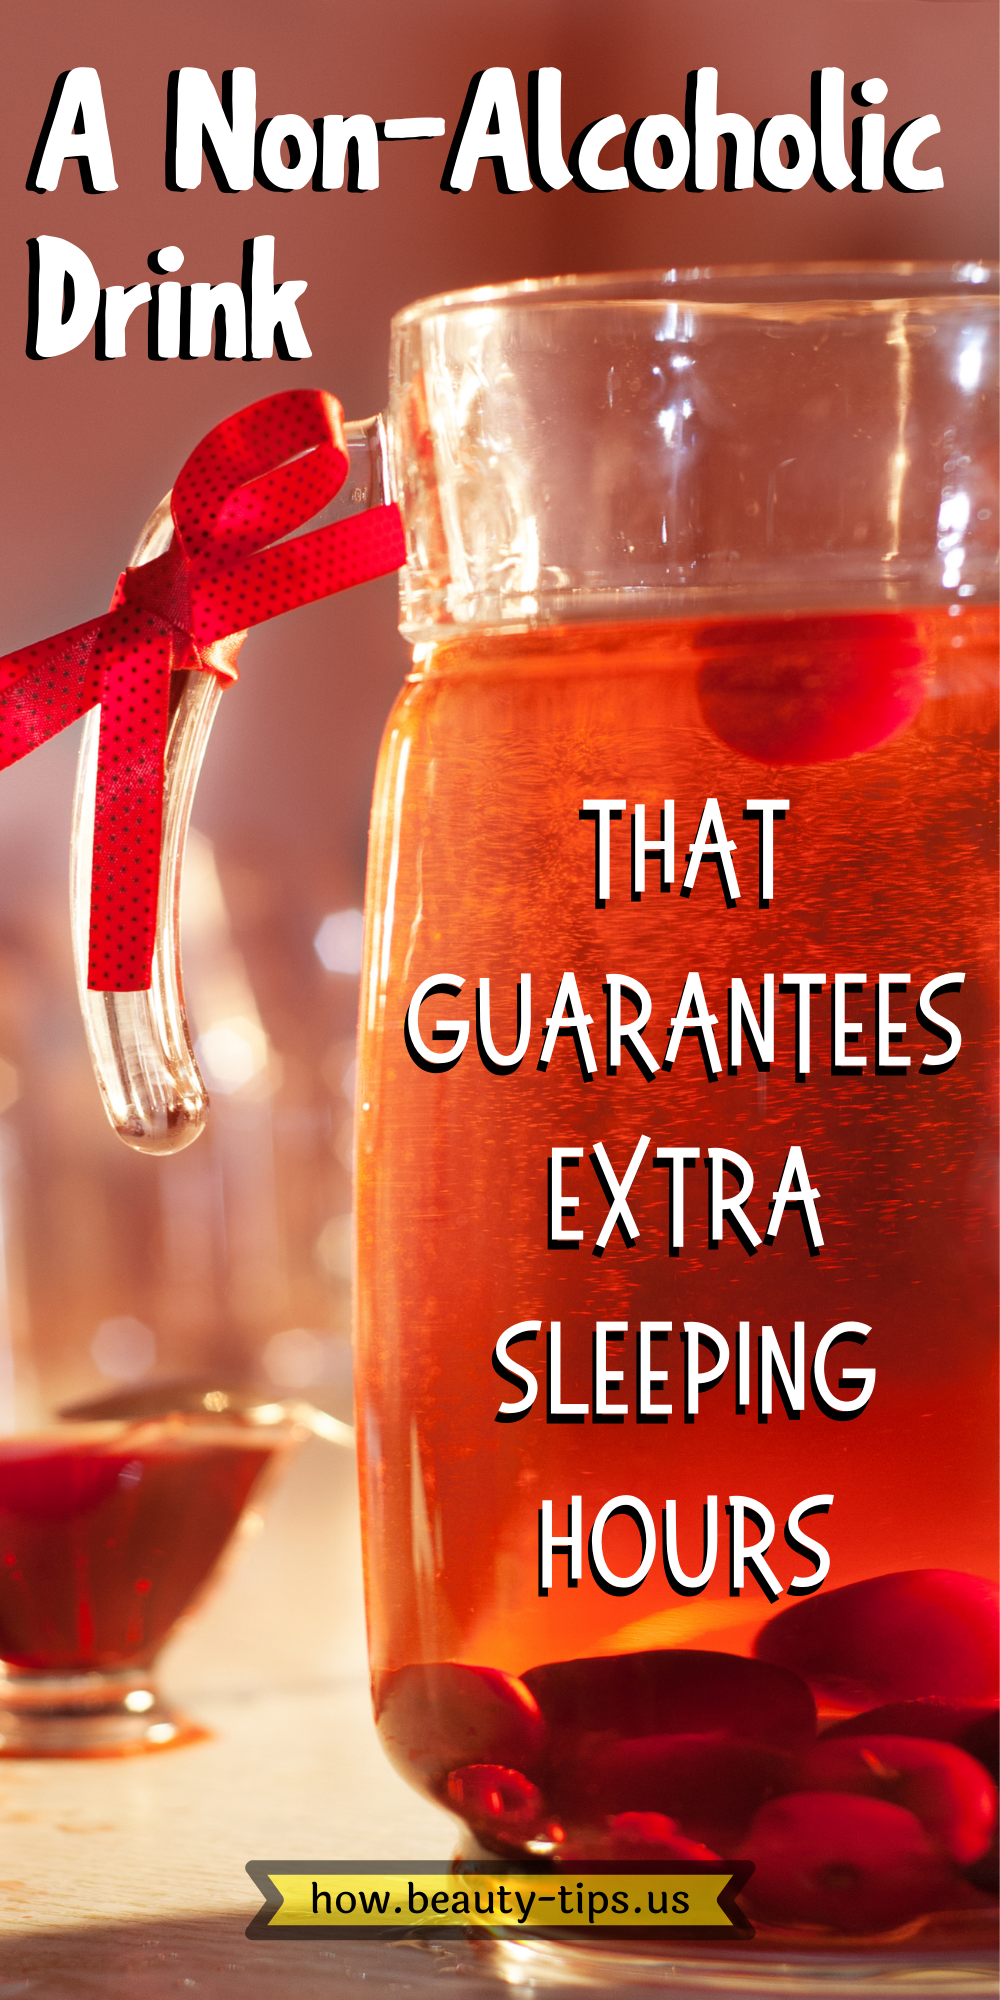 A Non-Alcoholic Drink That Guarantees Extra Sleeping Hours